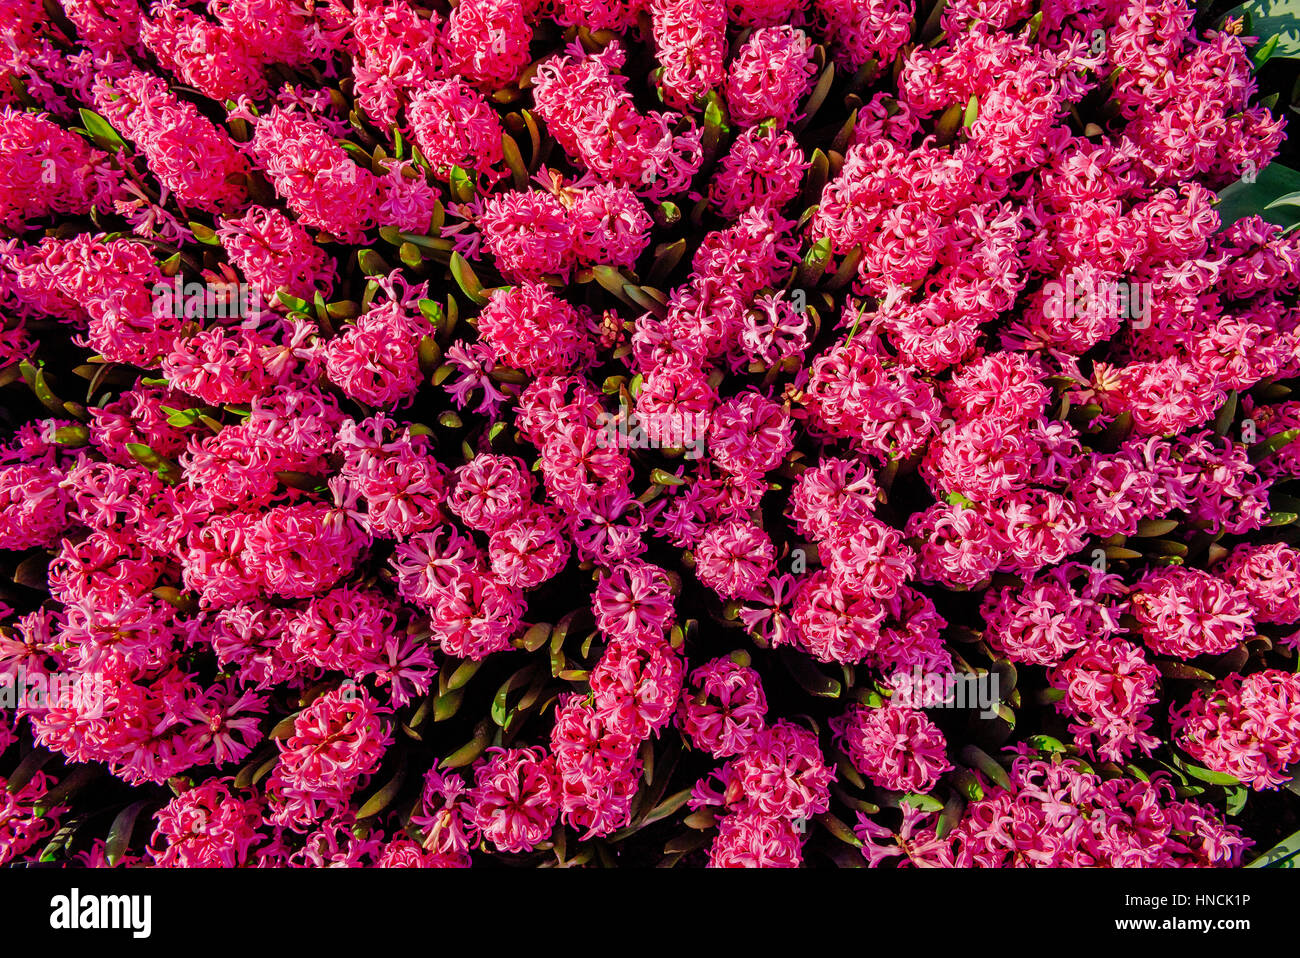 Flower flowerbeds in the park. - Stock Image